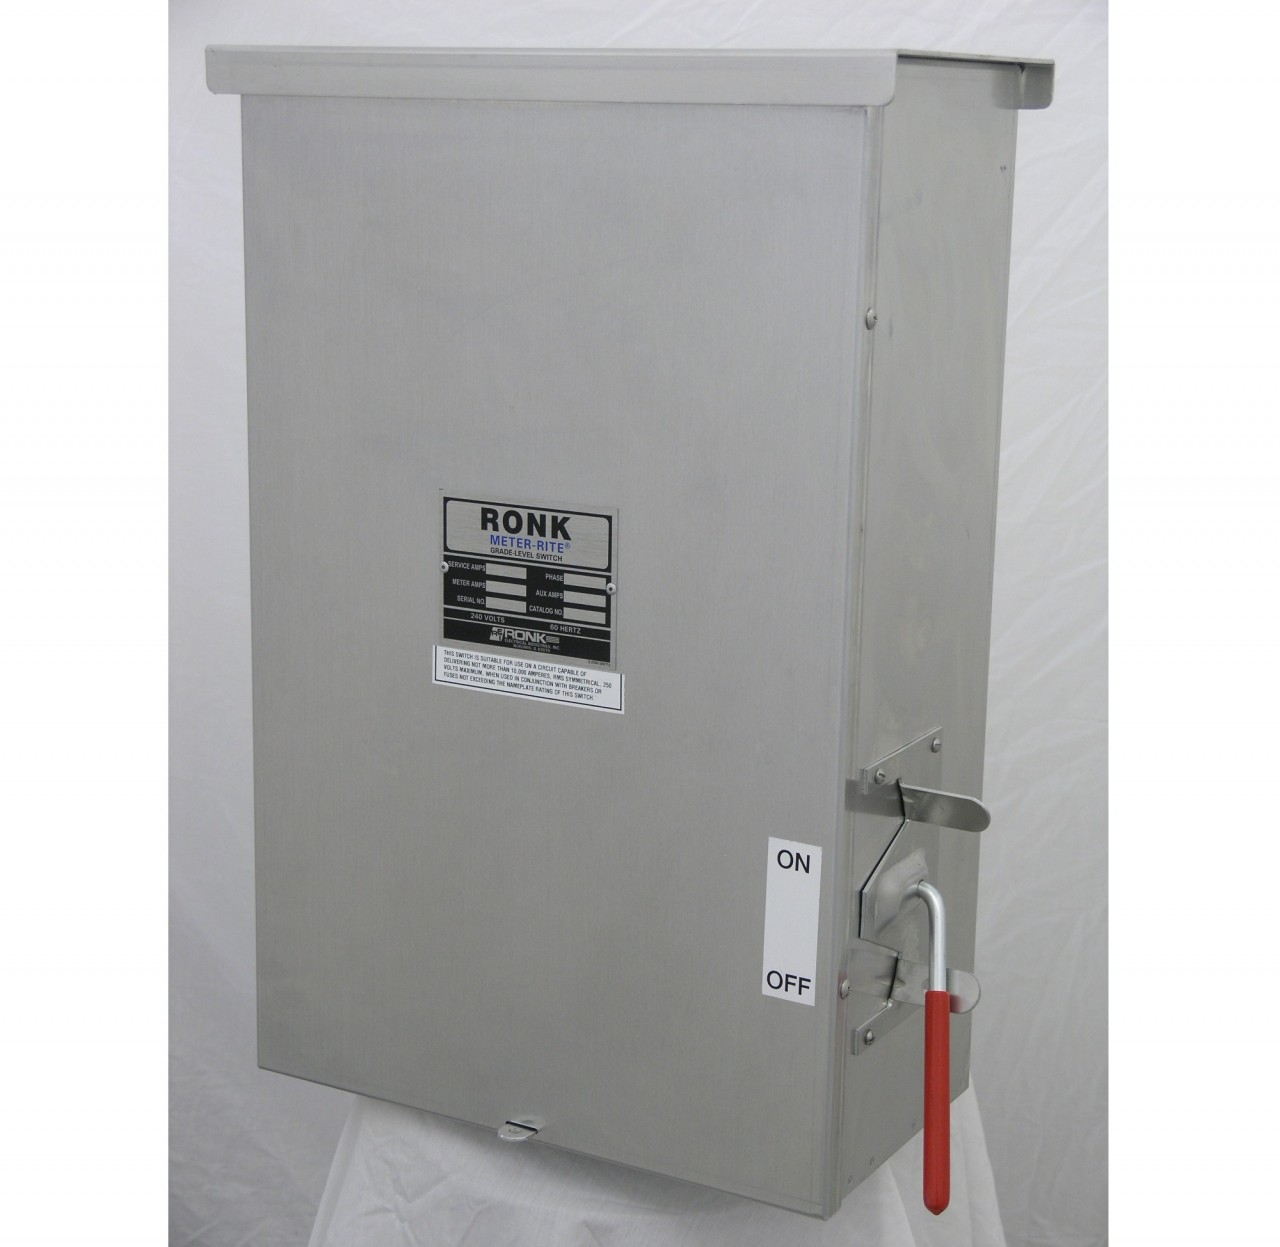 Ronk D7406 Disconnect Switch (1Ph, 400A)